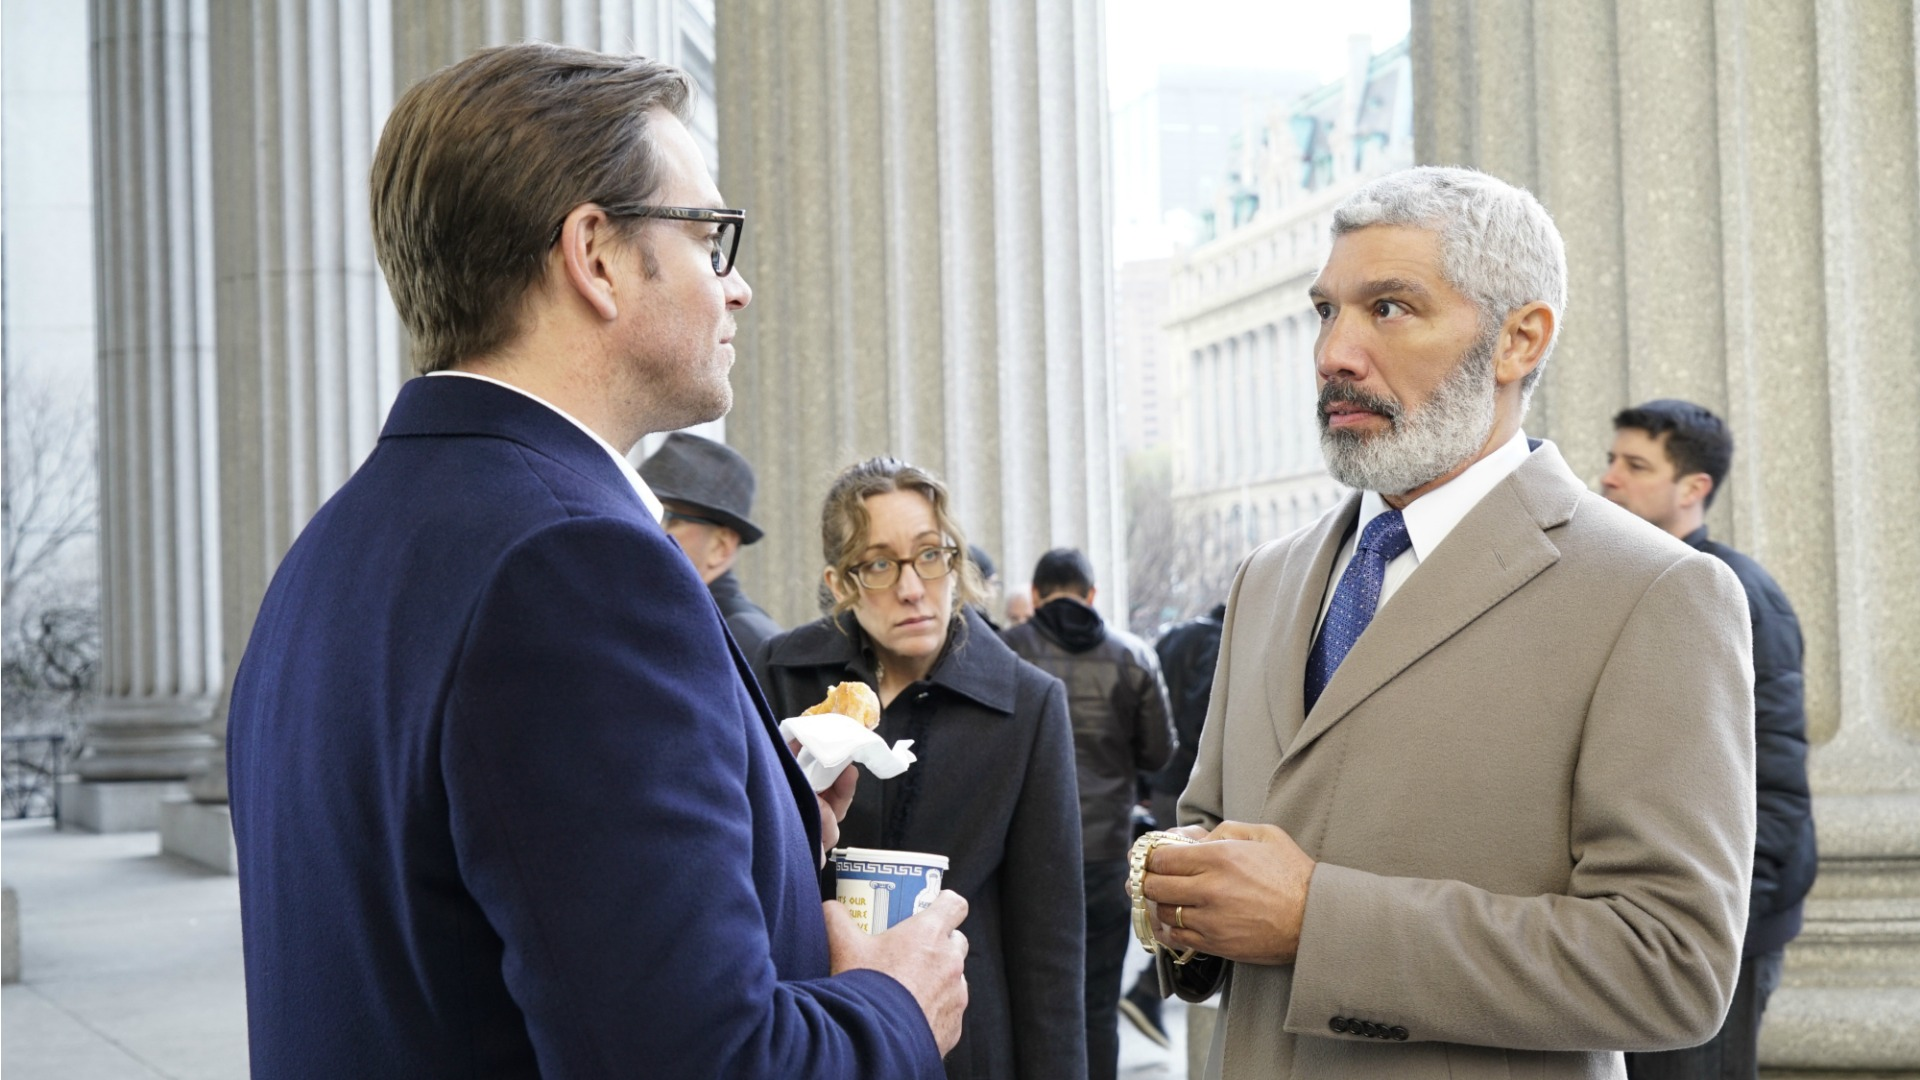 Dr. Bull speaks with his client's lawyer.